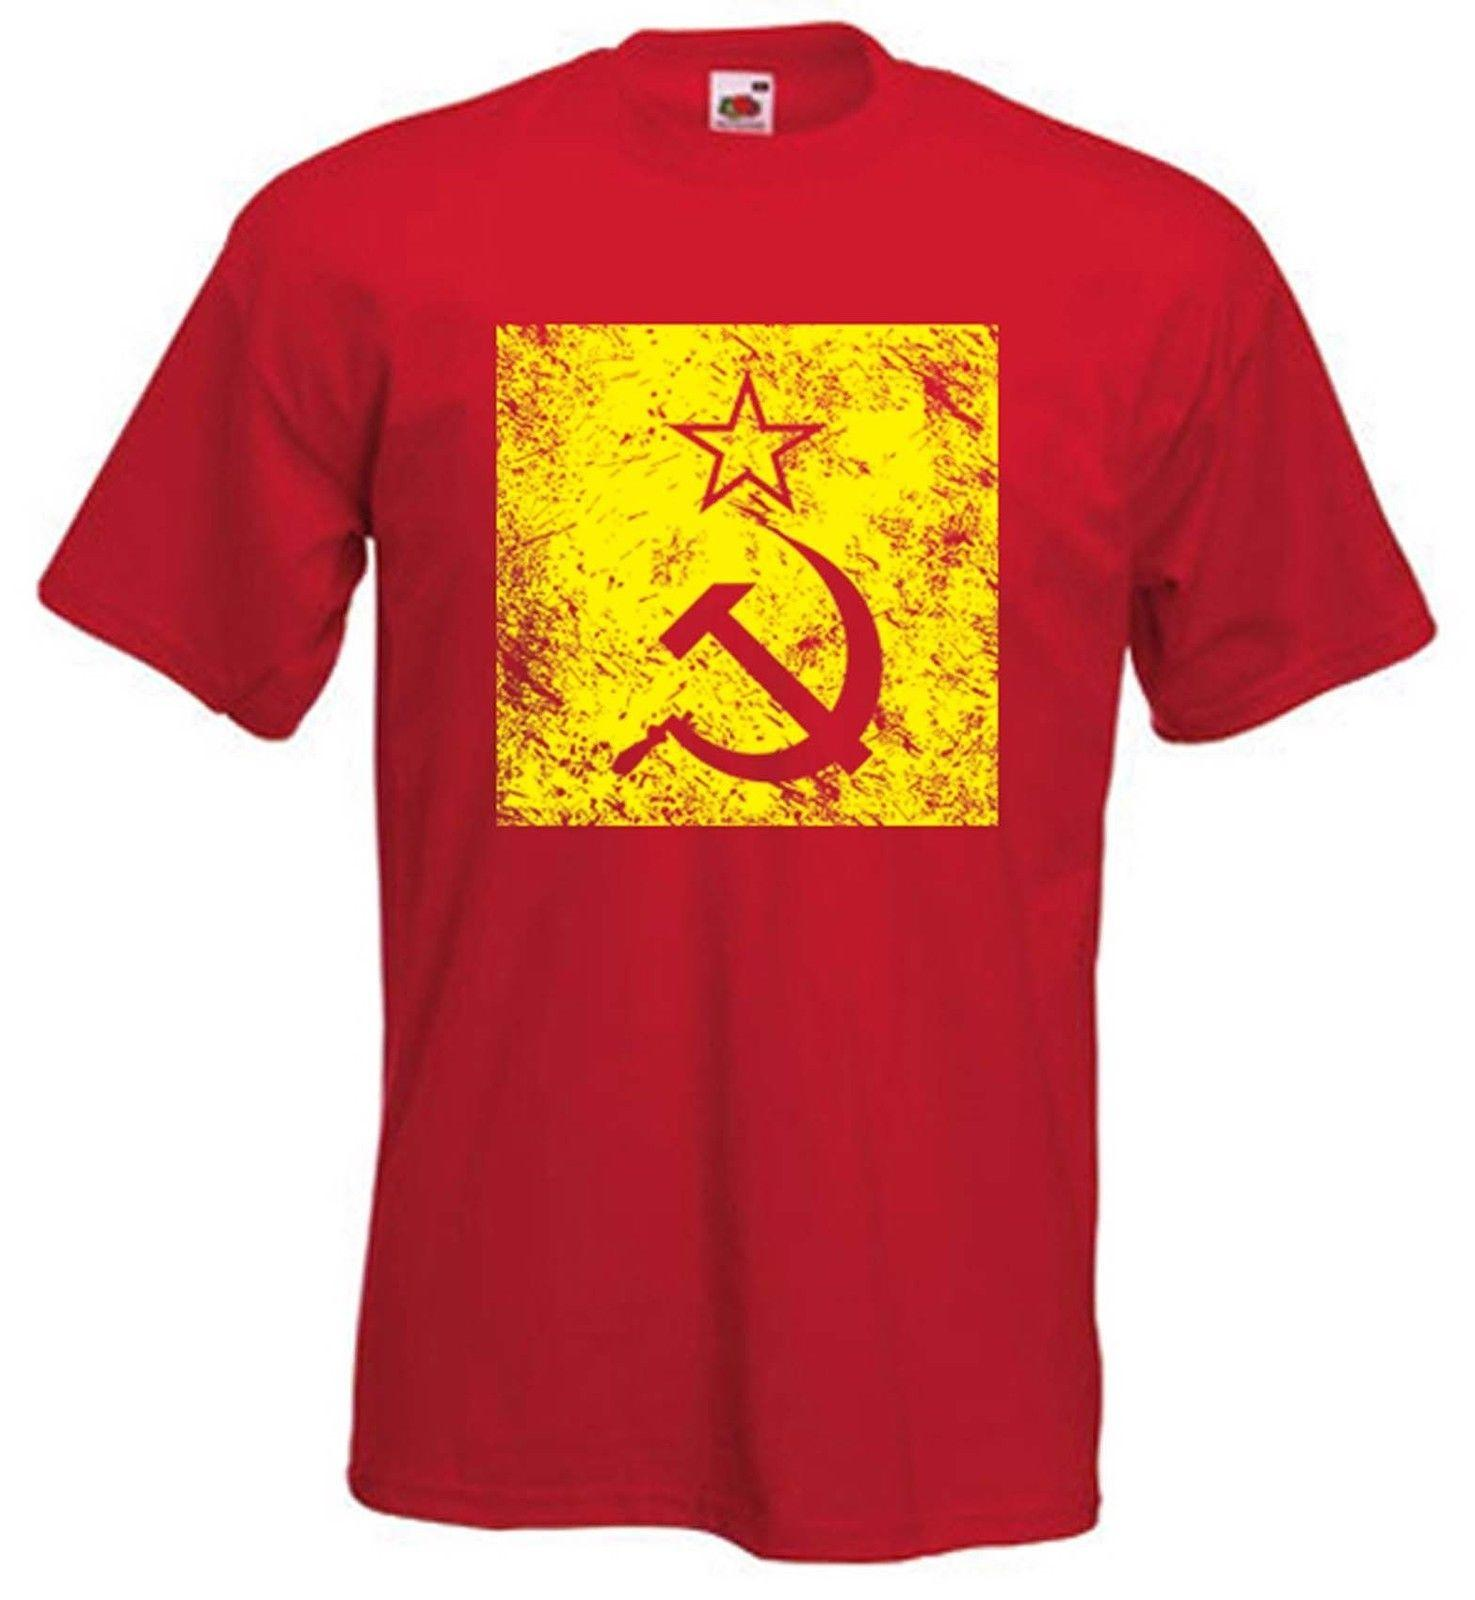 645ce6e6b HAMMER & SICKLE T SHIRT CCCP Soviet Russia Communist USSR KGB Political  Funny Unisex Casual Tshirt Top Awesome Tee Different T Shirts From  Classicclobber, ...